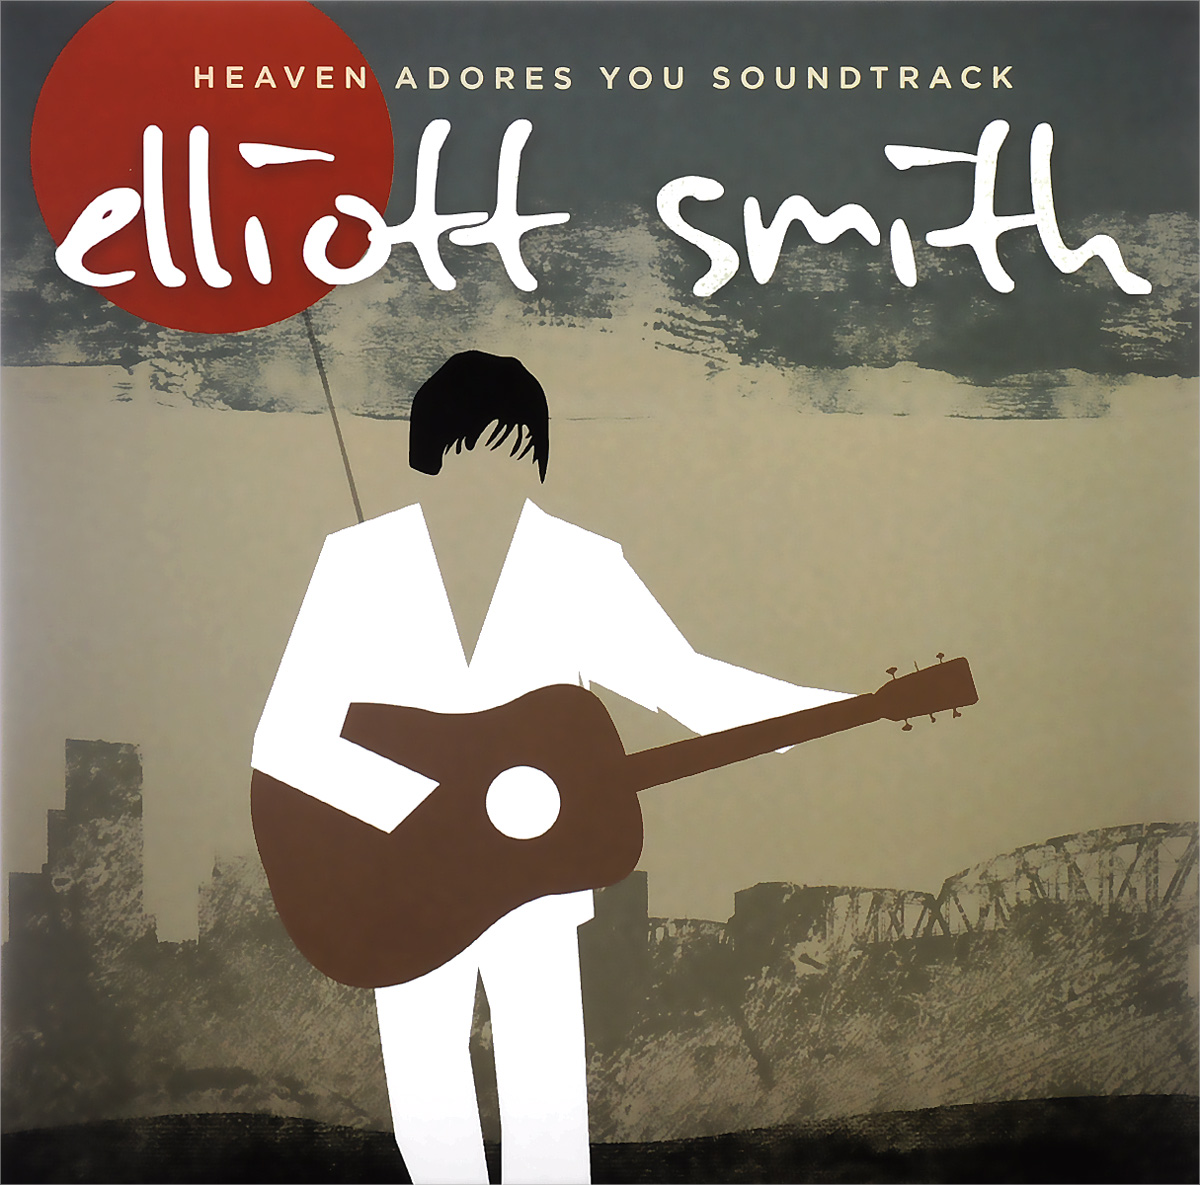 Эллиот Смит,Heatmiser,Neil Gust,Conan O'Brien Elliott Smith. Heaven Adores You. Soundtrack (2 LP)